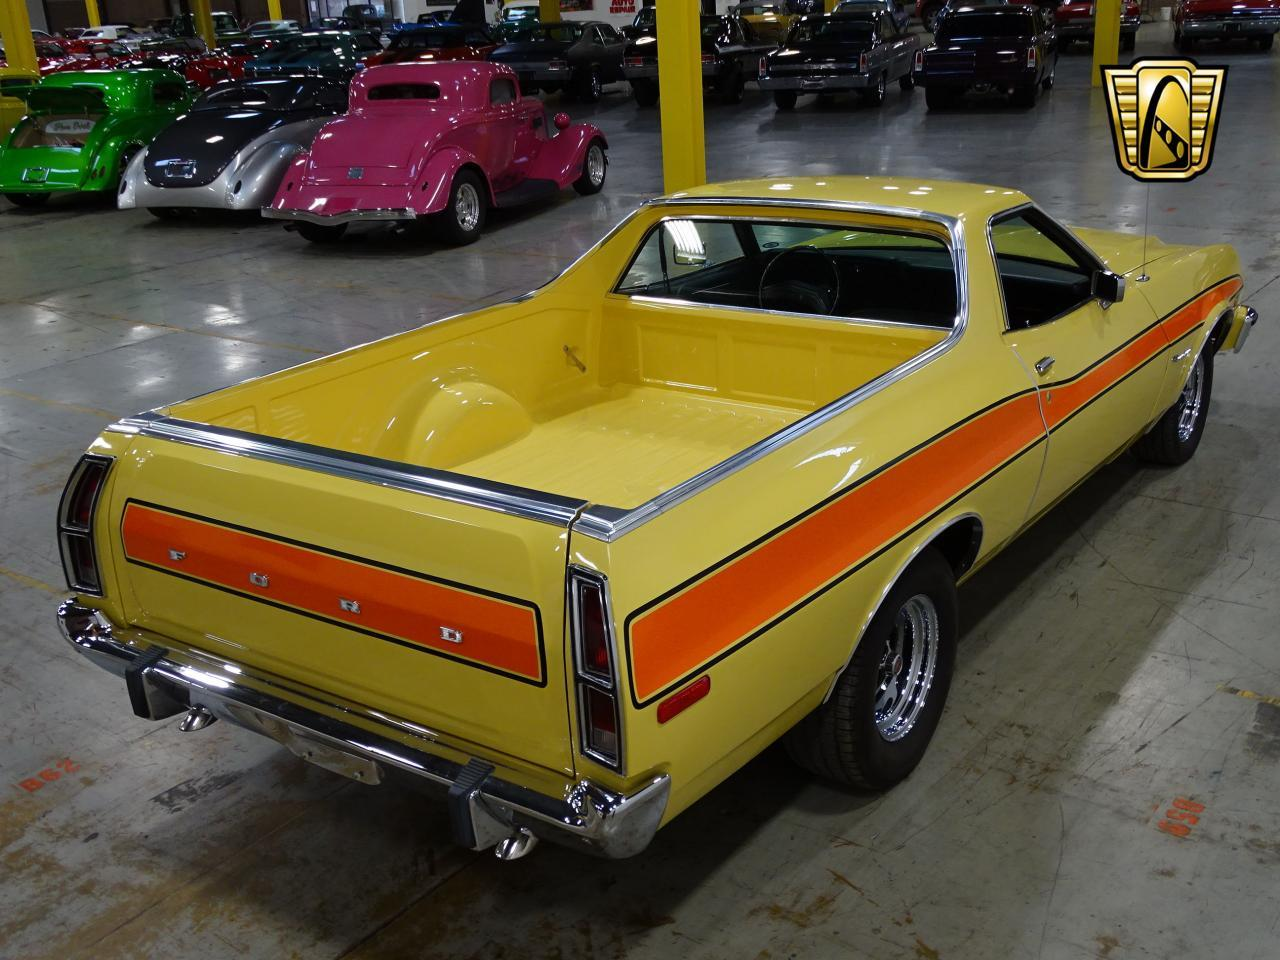 Large Picture of '76 Ranchero located in West Deptford New Jersey - $20,995.00 - MOAF